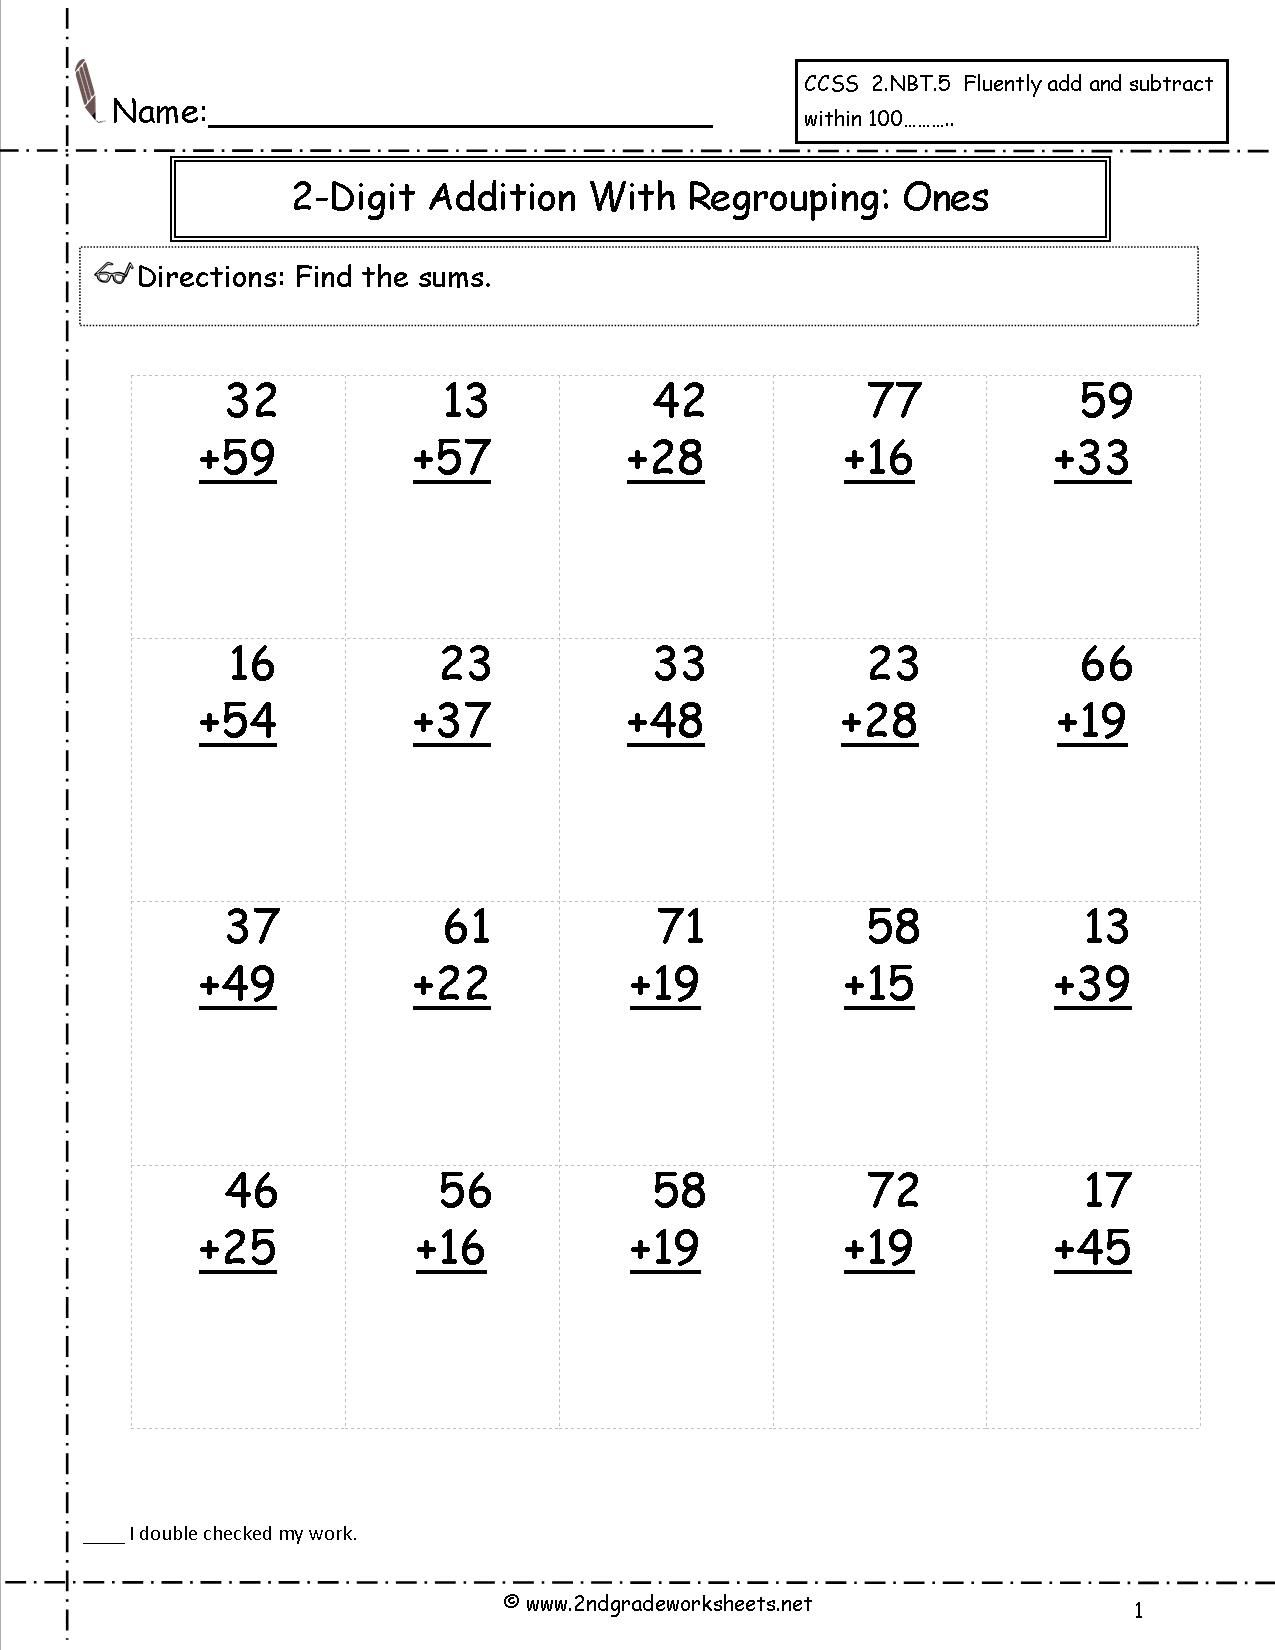 4 Digit Addition With Regrouping Worksheets carolinabeachsurfreport – 4 Digit Addition with Regrouping Worksheets